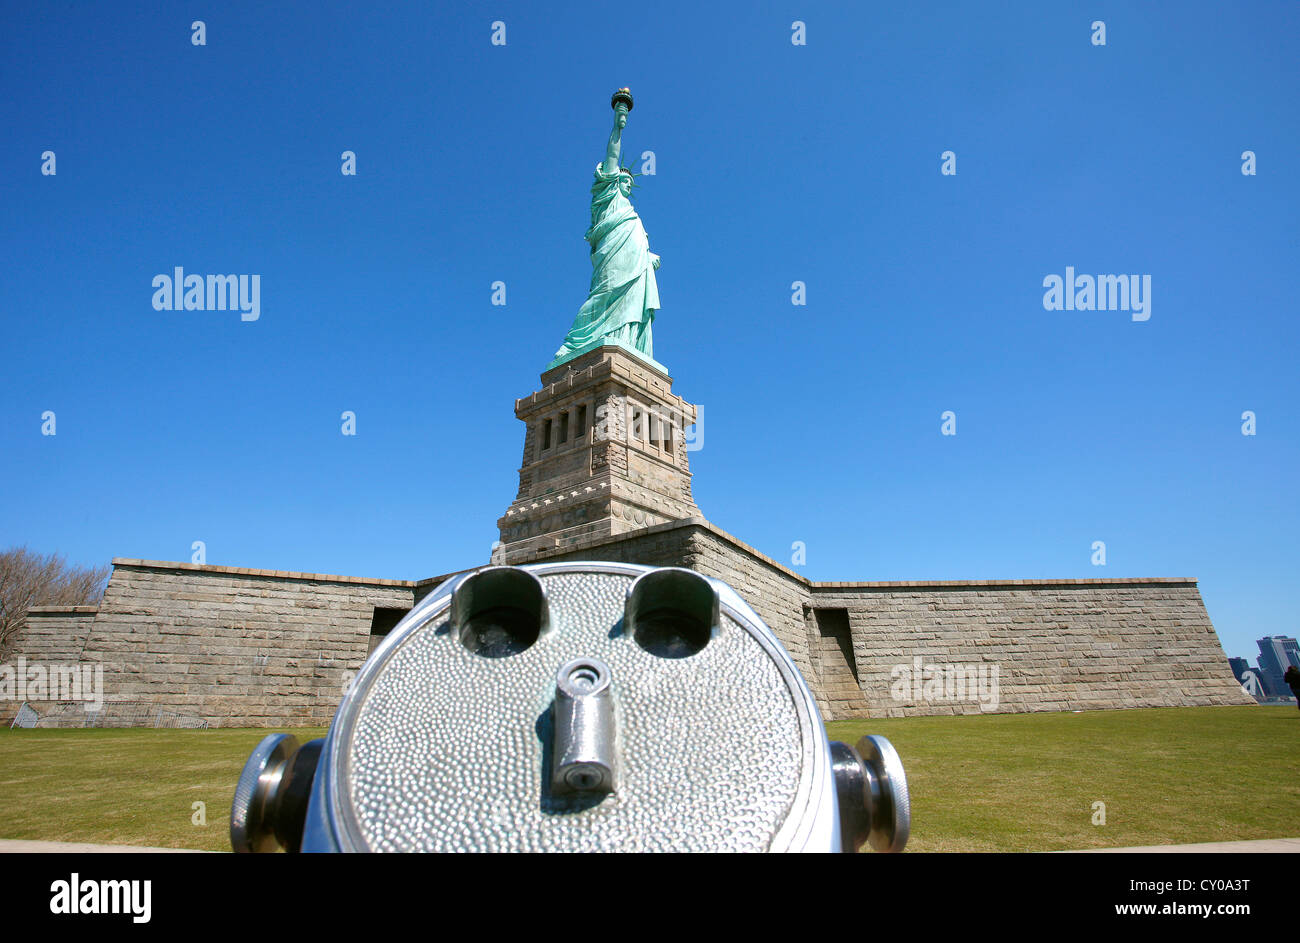 Statue of Liberty with a coin-telescope, Liberty Island, New York City, New York, United States, North America - Stock Image